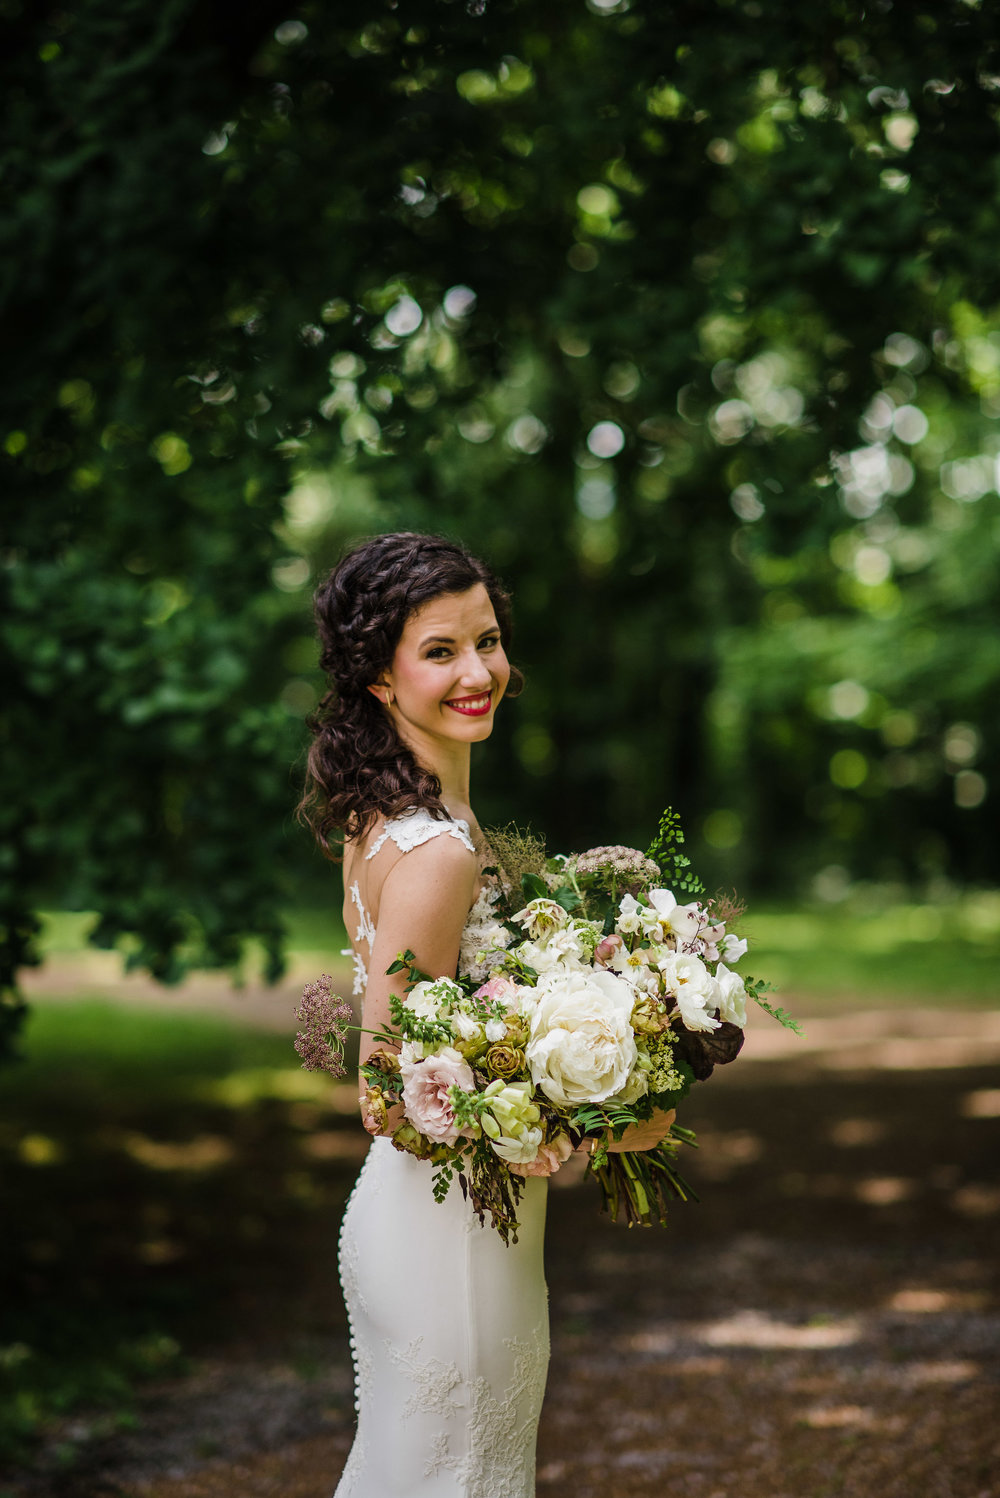 Art Deco inspired garden wedding at Travellers Rest in Nashville with lush, organic floral design